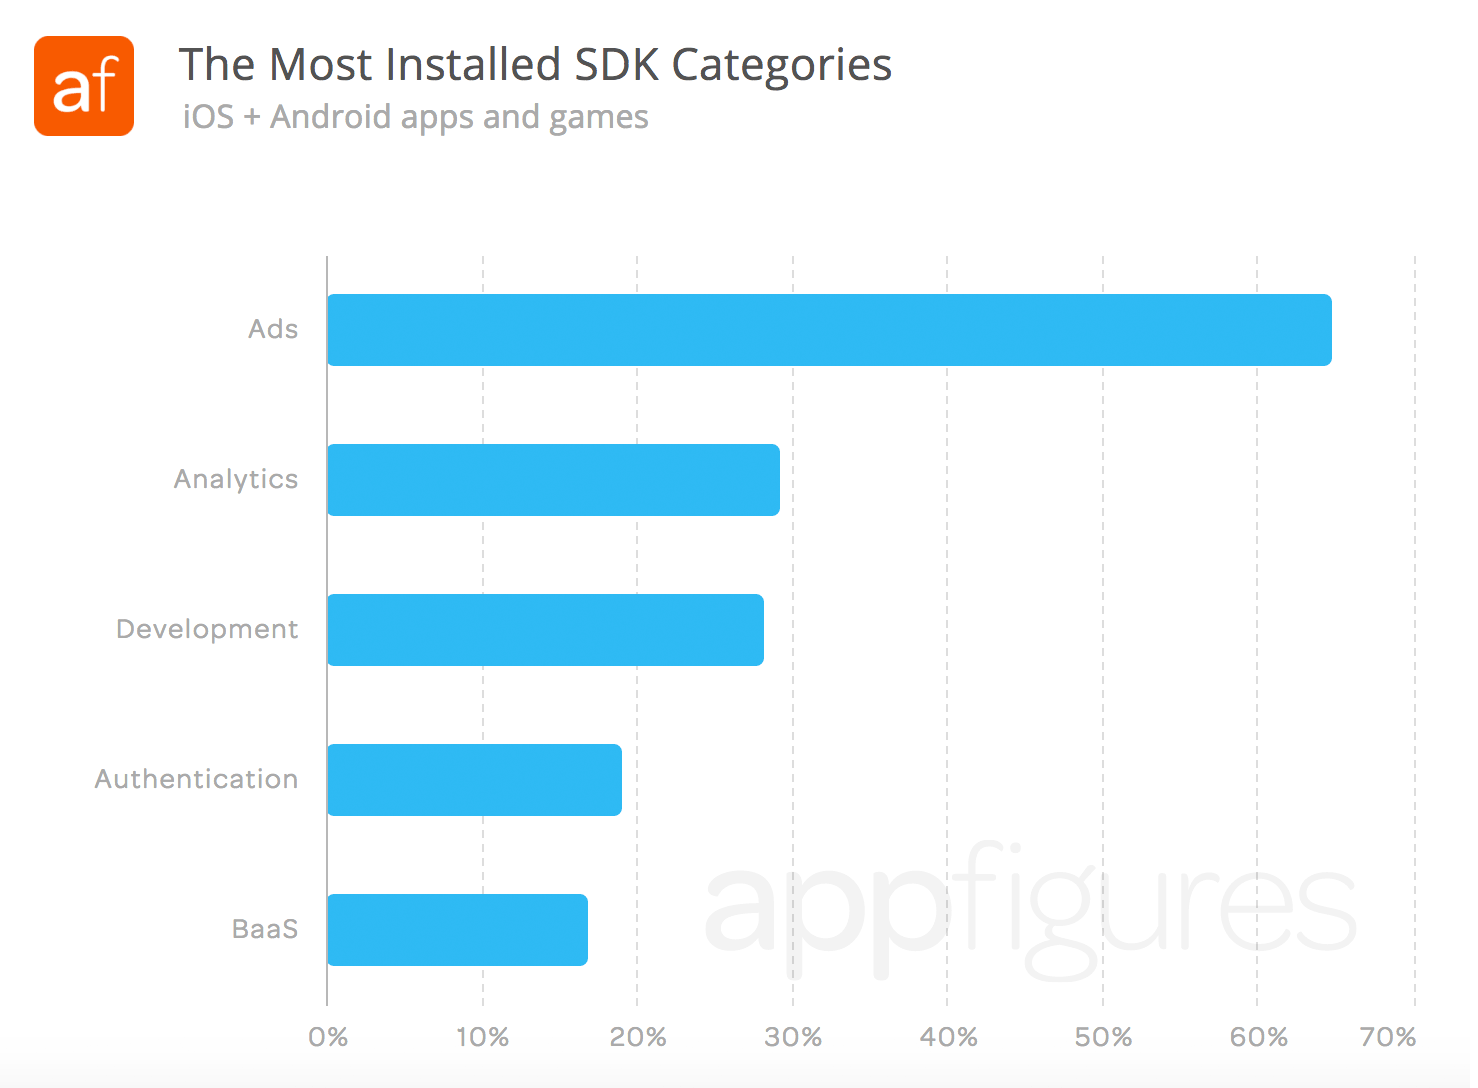 Most installed types of SDKs